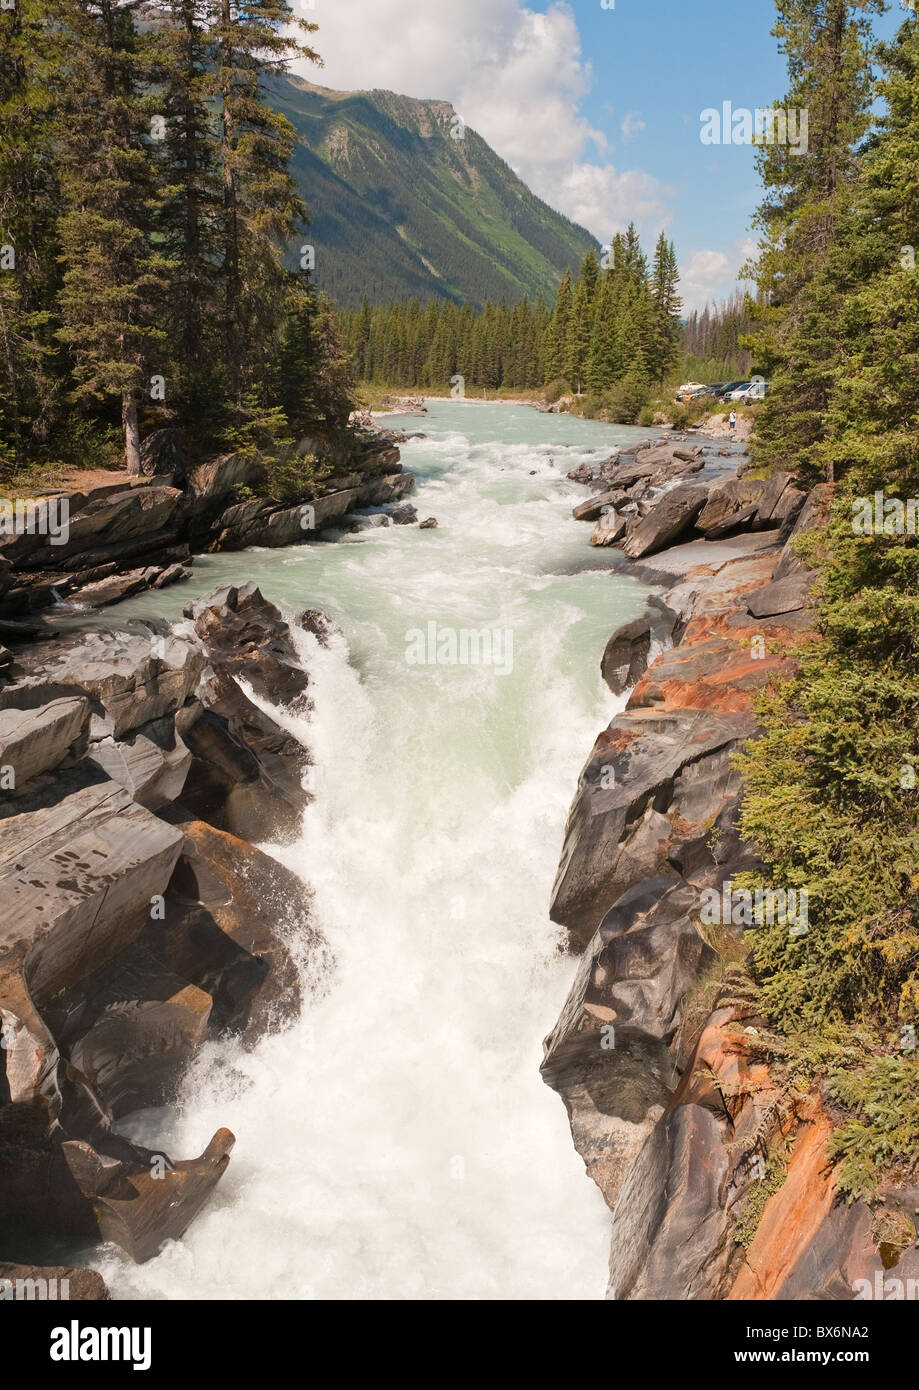 Numa Falls on the Vermilion River, Kootenay National Park, British Columbia, Canada. - Stock Image